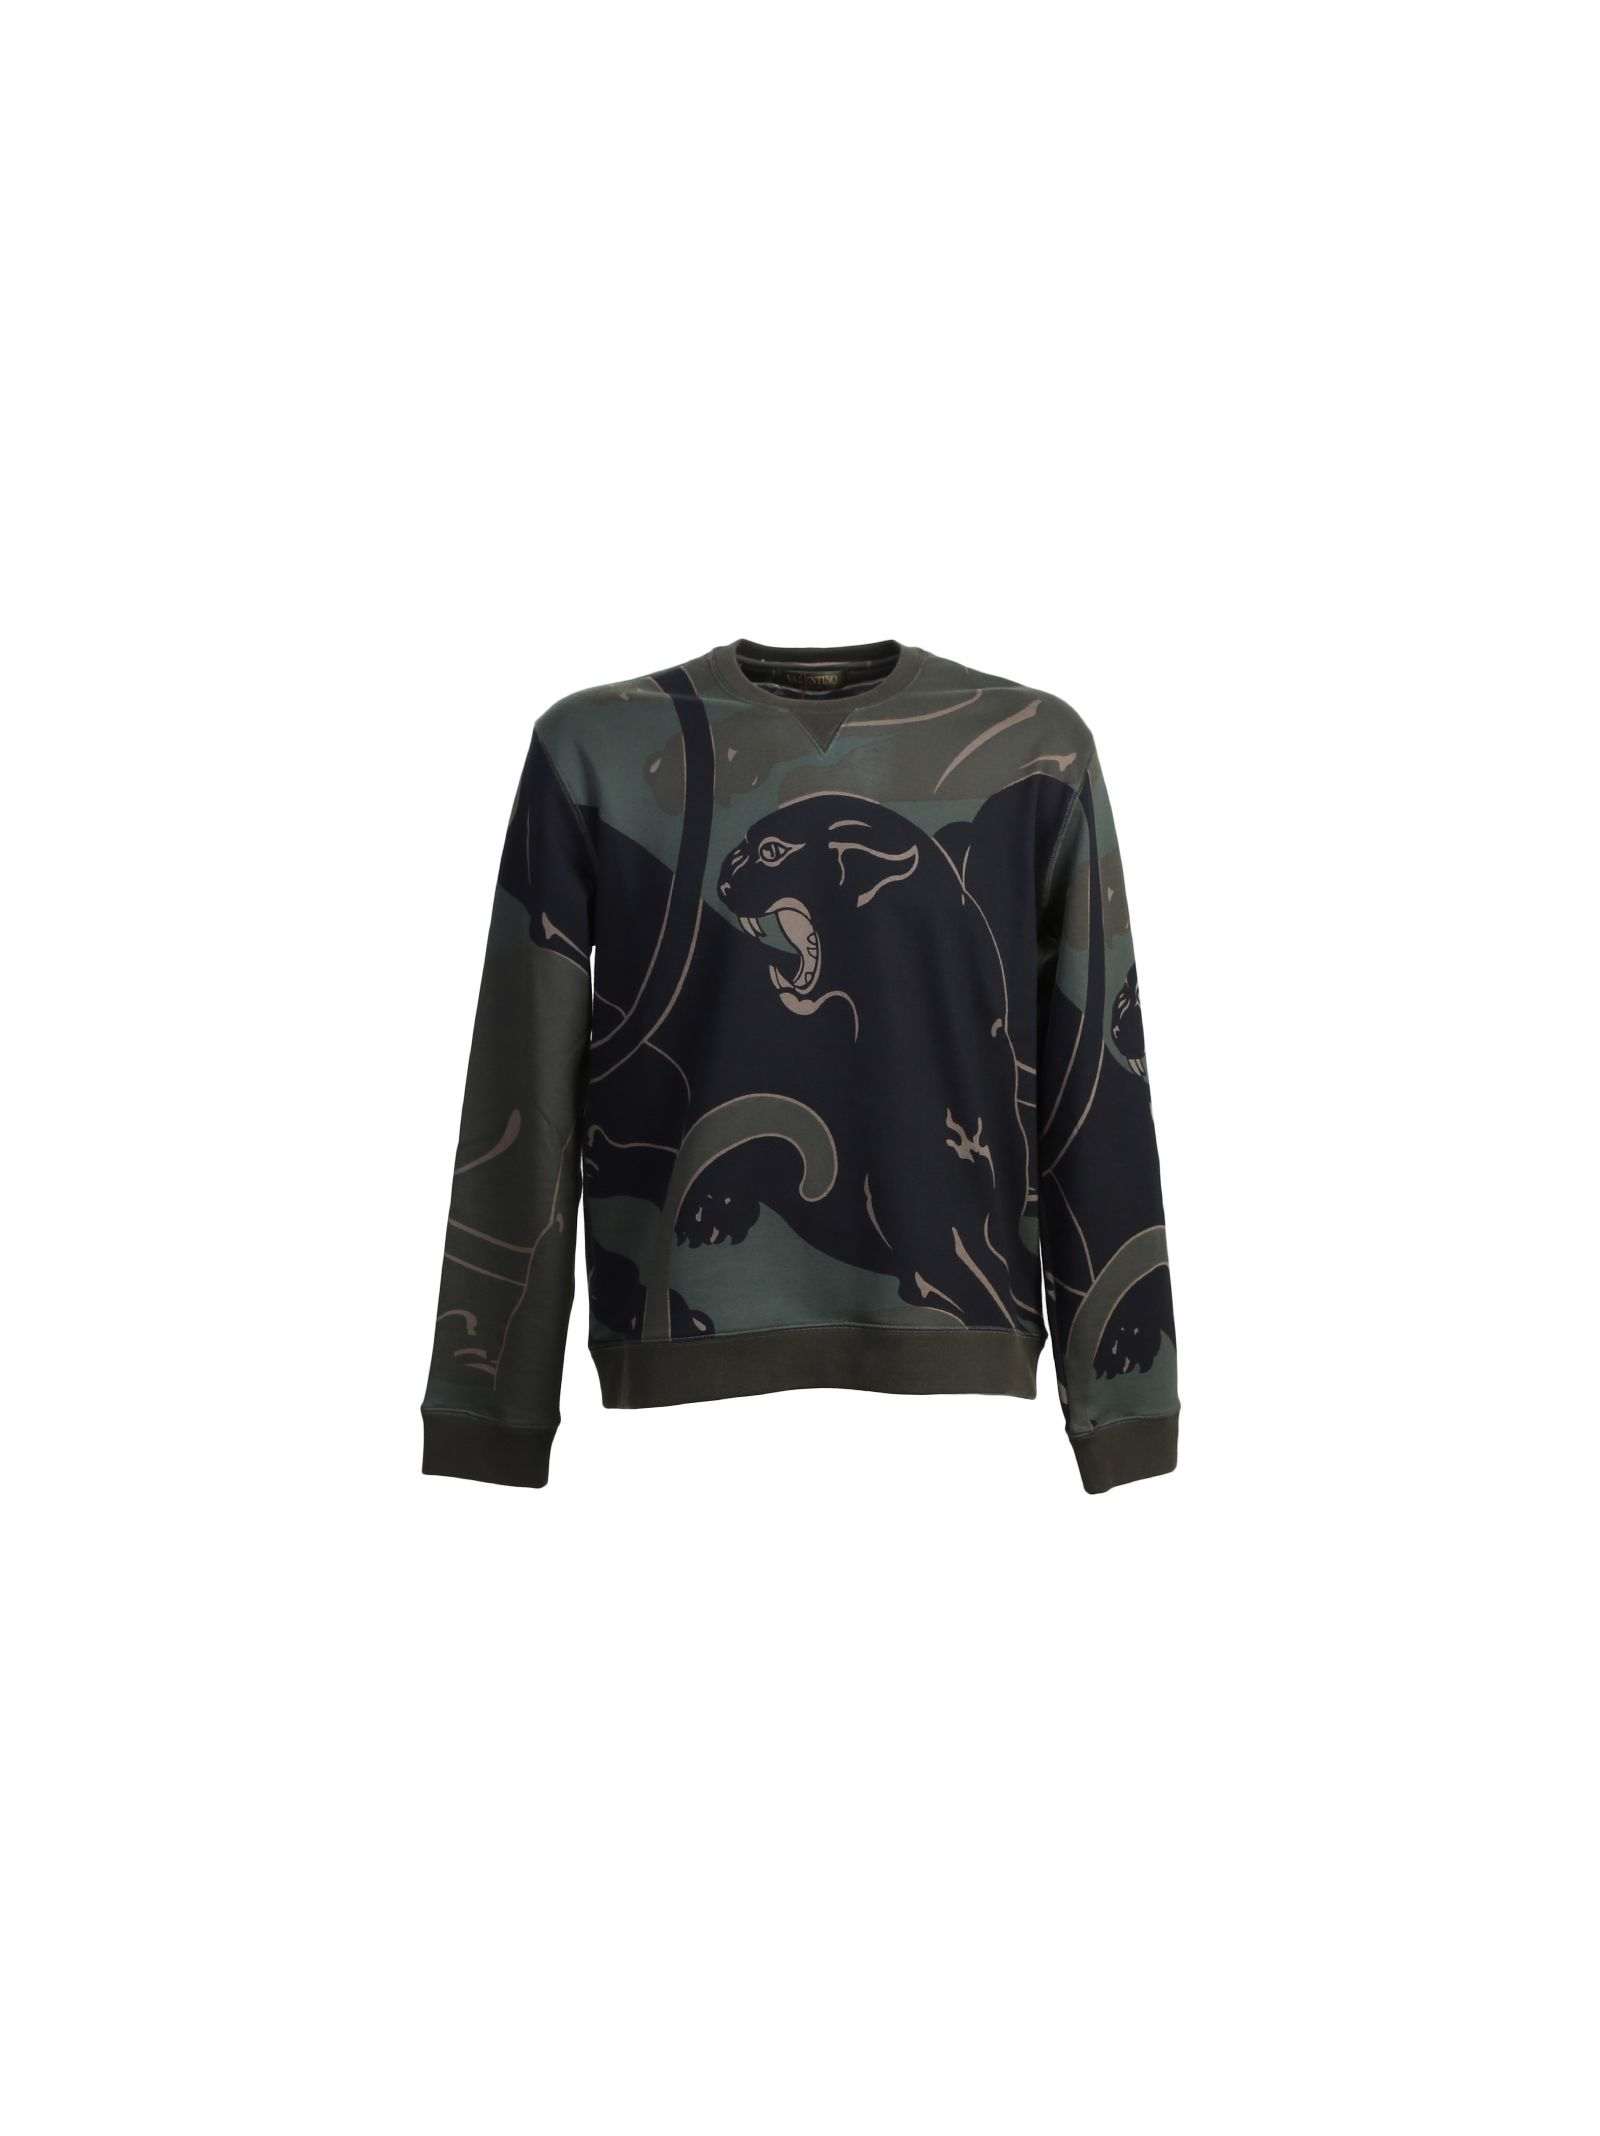 Panther Print Camouflage Cotton Sweater